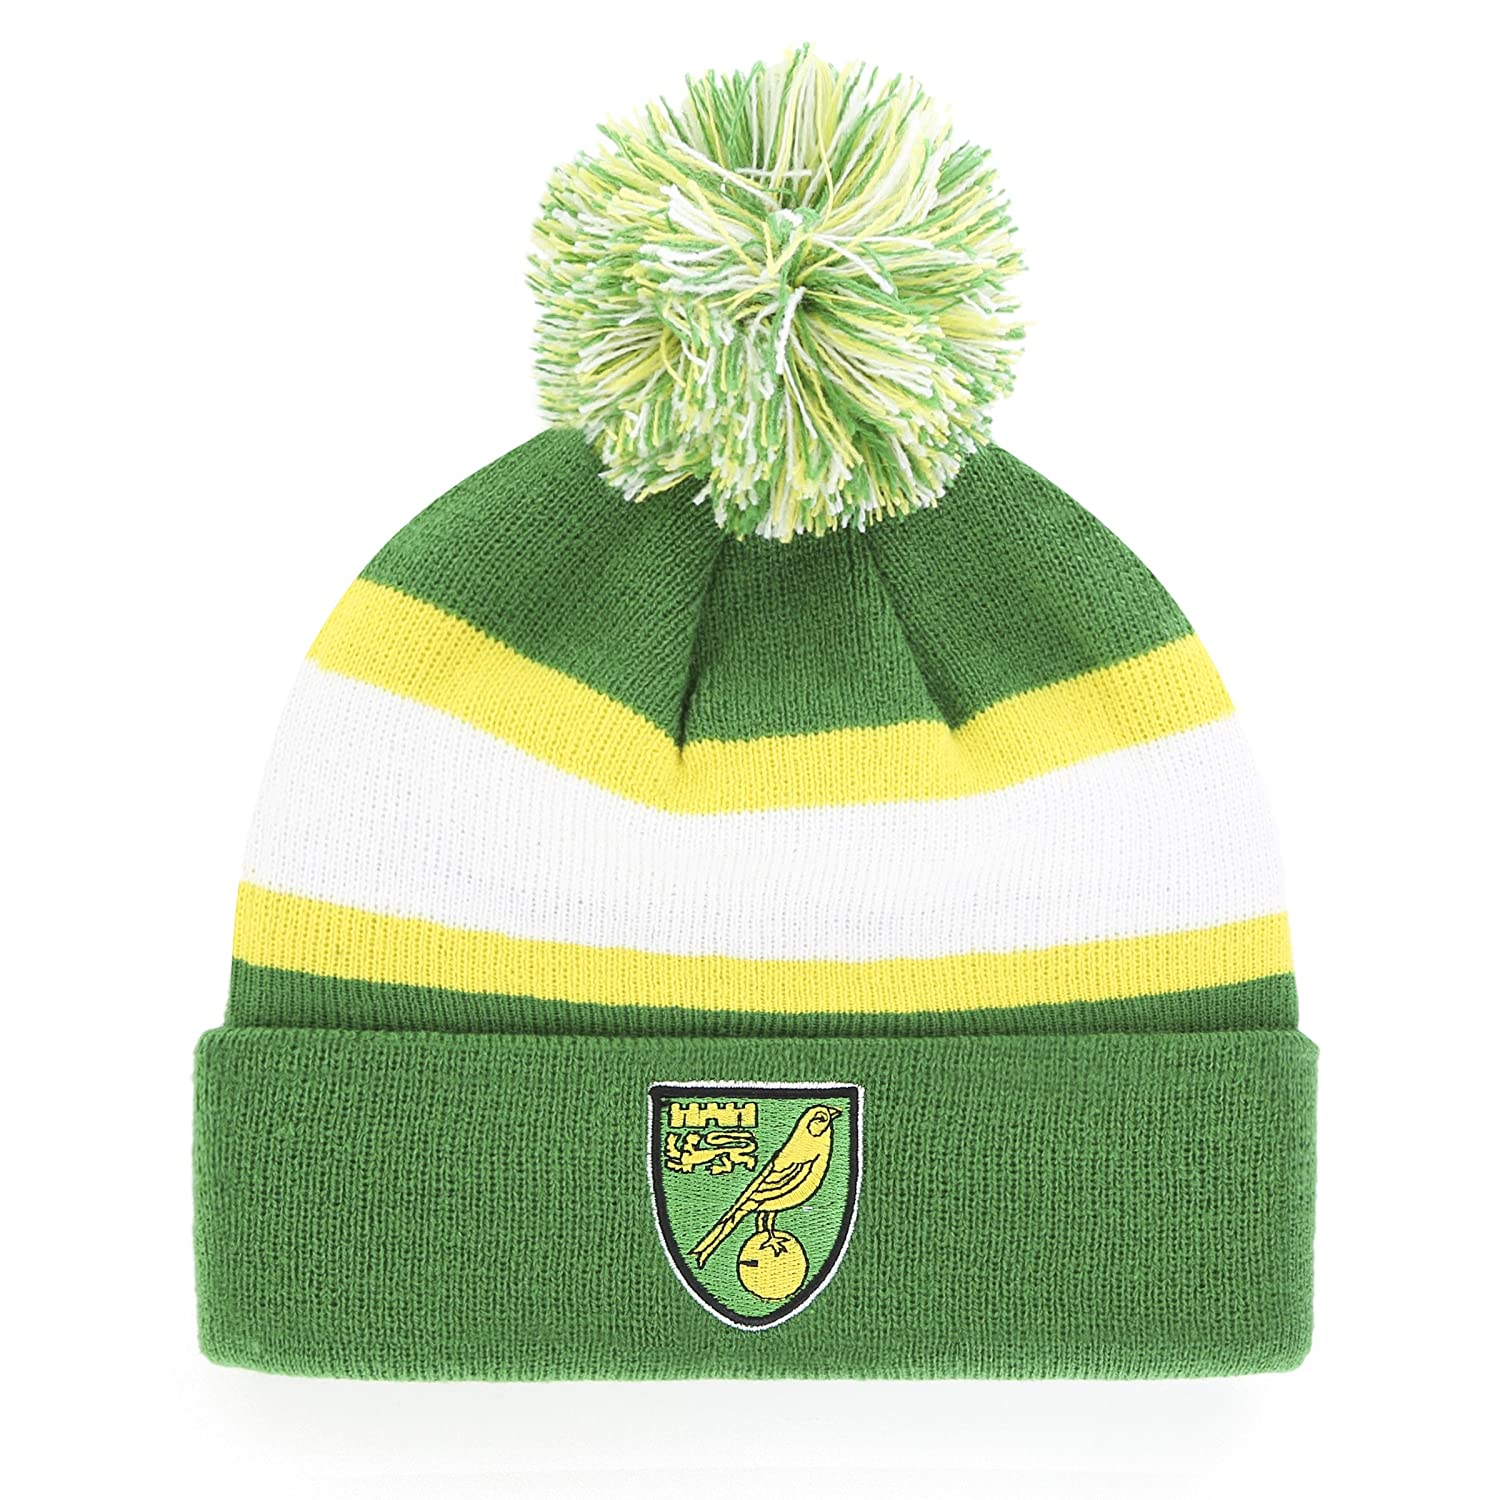 EPL Rush Down OTS Cuff Knit Cap with Pom、1サイズ B071ZGZPD8 One Size|Swansea City One Size